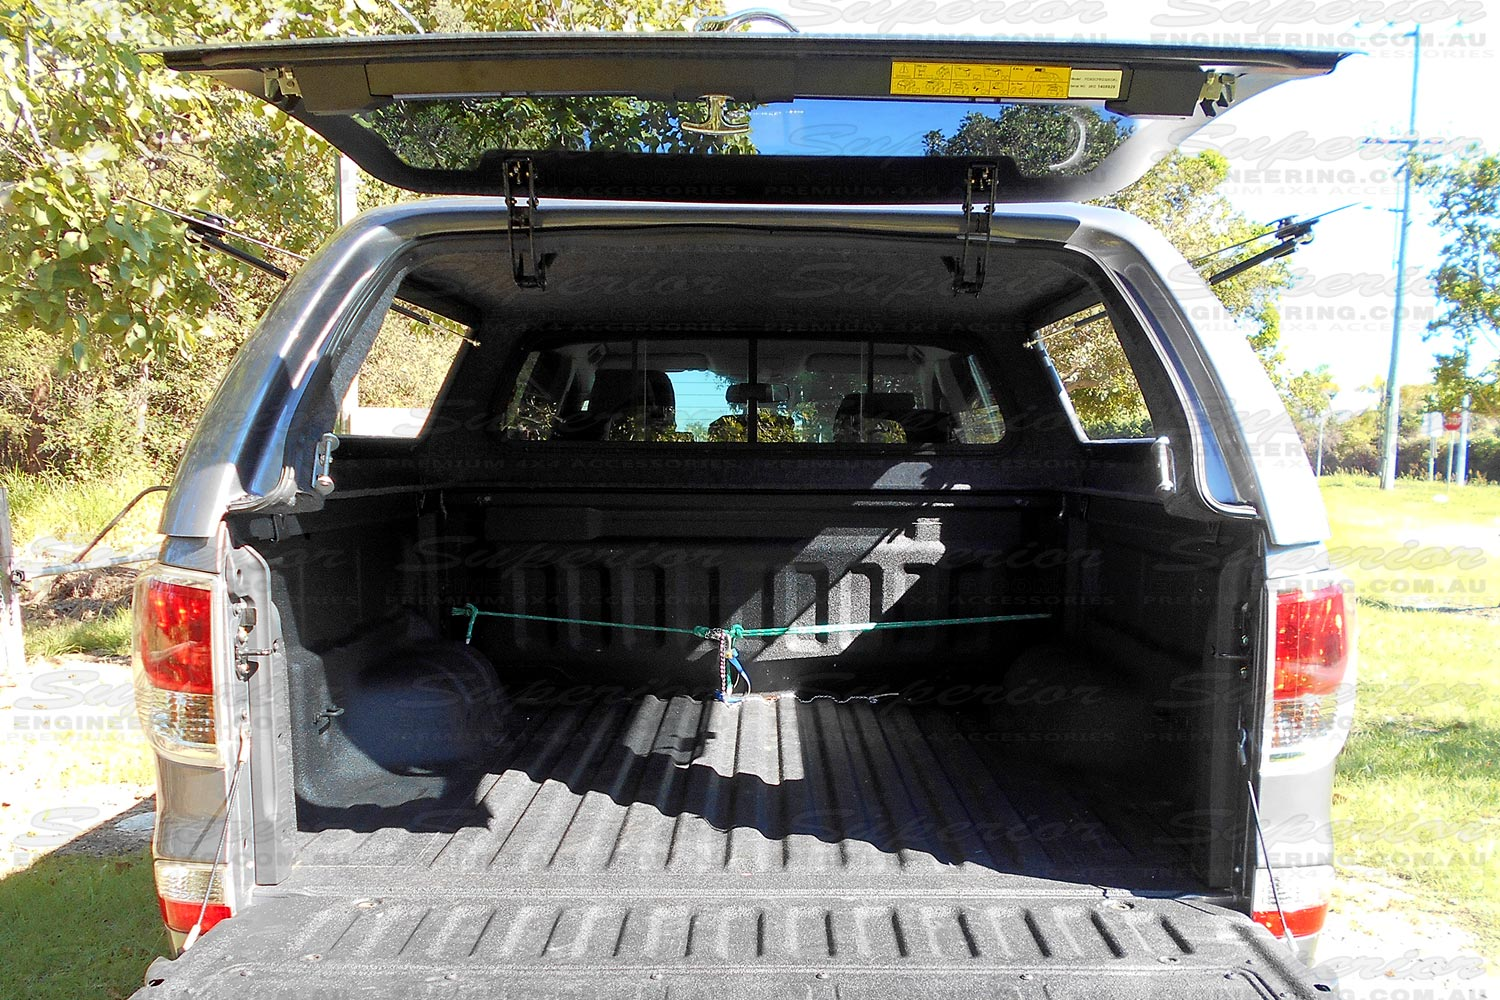 Rear view of the Ironman 4x4 Thermoplas Canopy with the rear window fully open and tray down